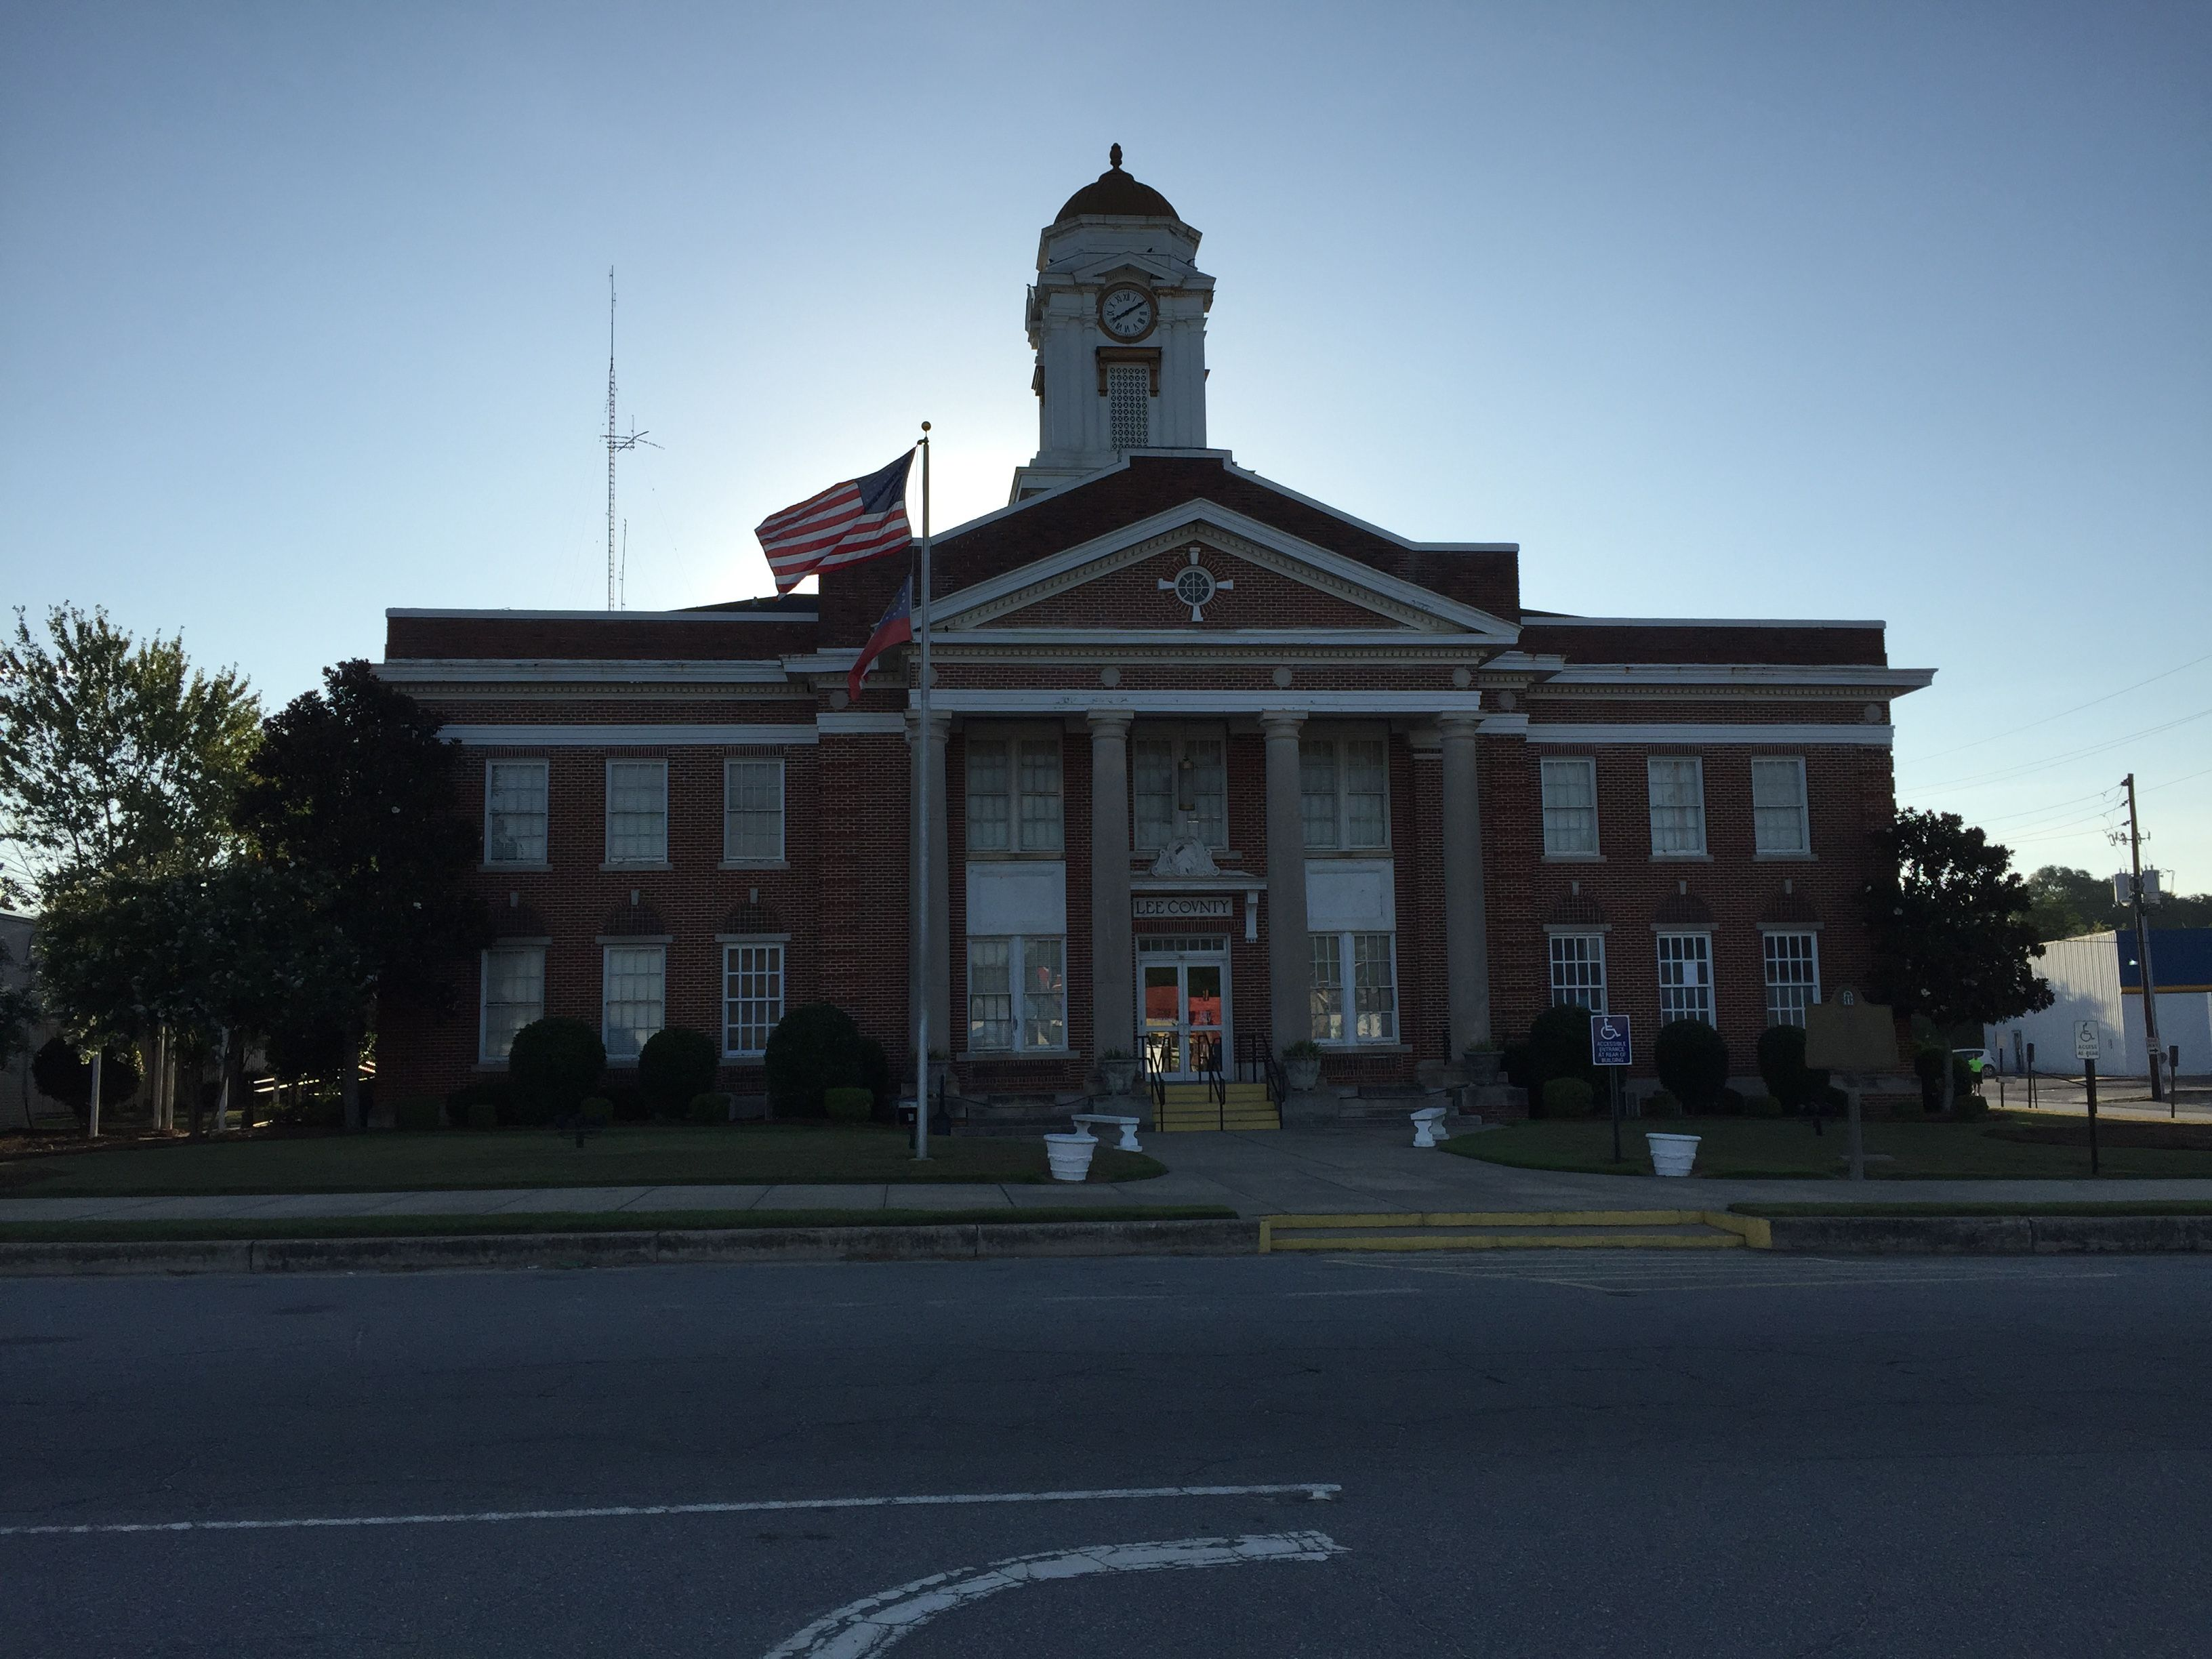 Lee County Courthouse in Leesburg, Paul Chandler